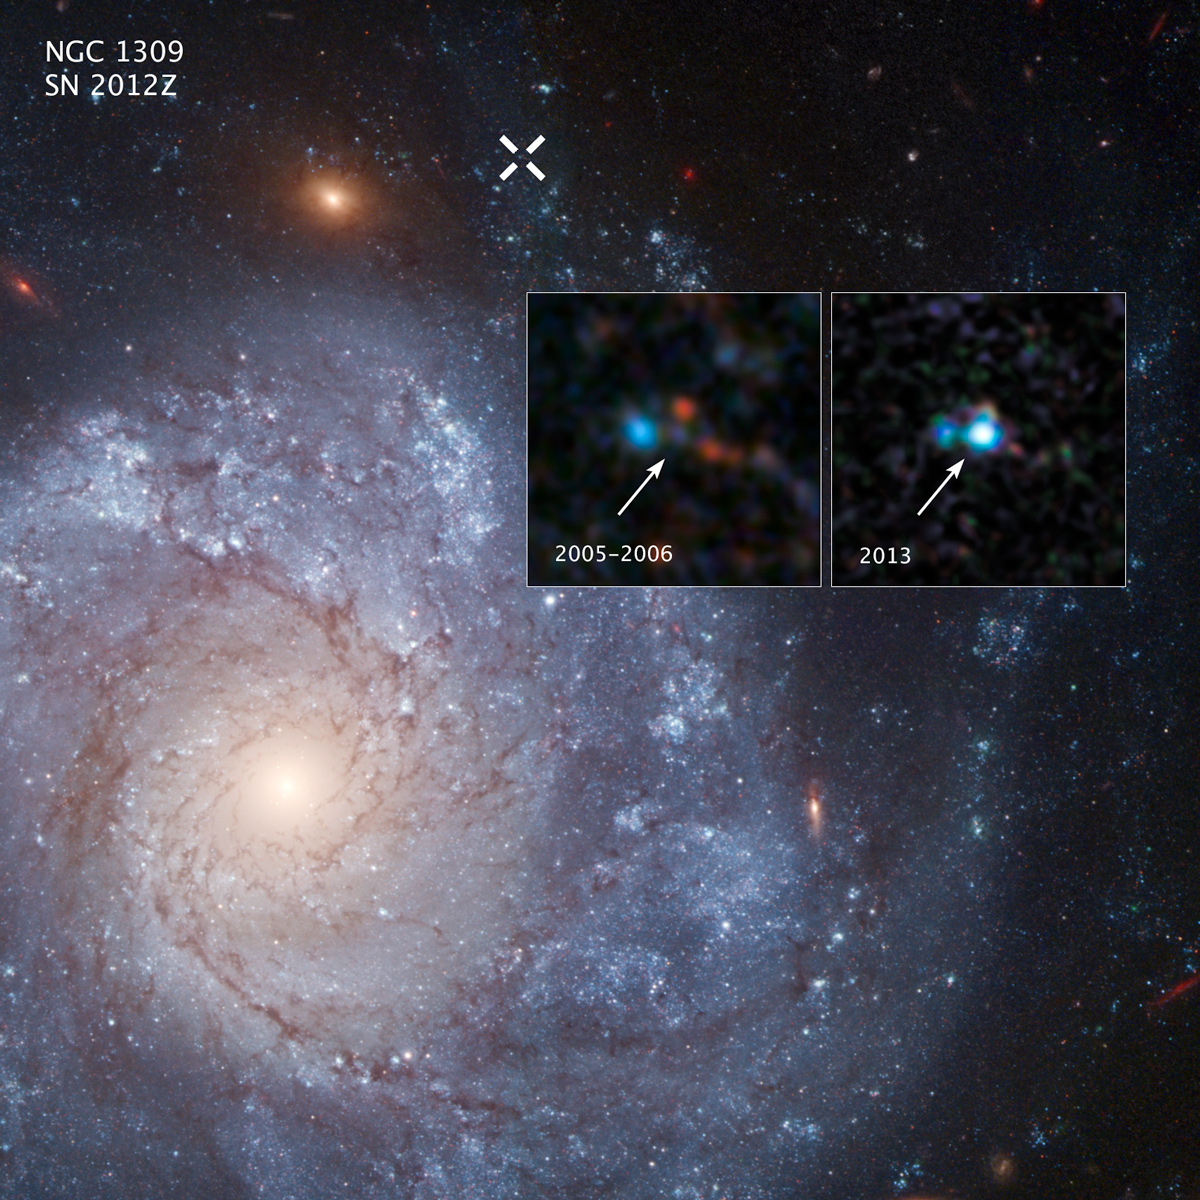 The two inset images show before-and-after images captured by NASA's Hubble Space Telescope of Supernova 2012Z in the spiral galaxy NGC 1309. The white X at the top of the main image marks the location of the supernova in the galaxy.